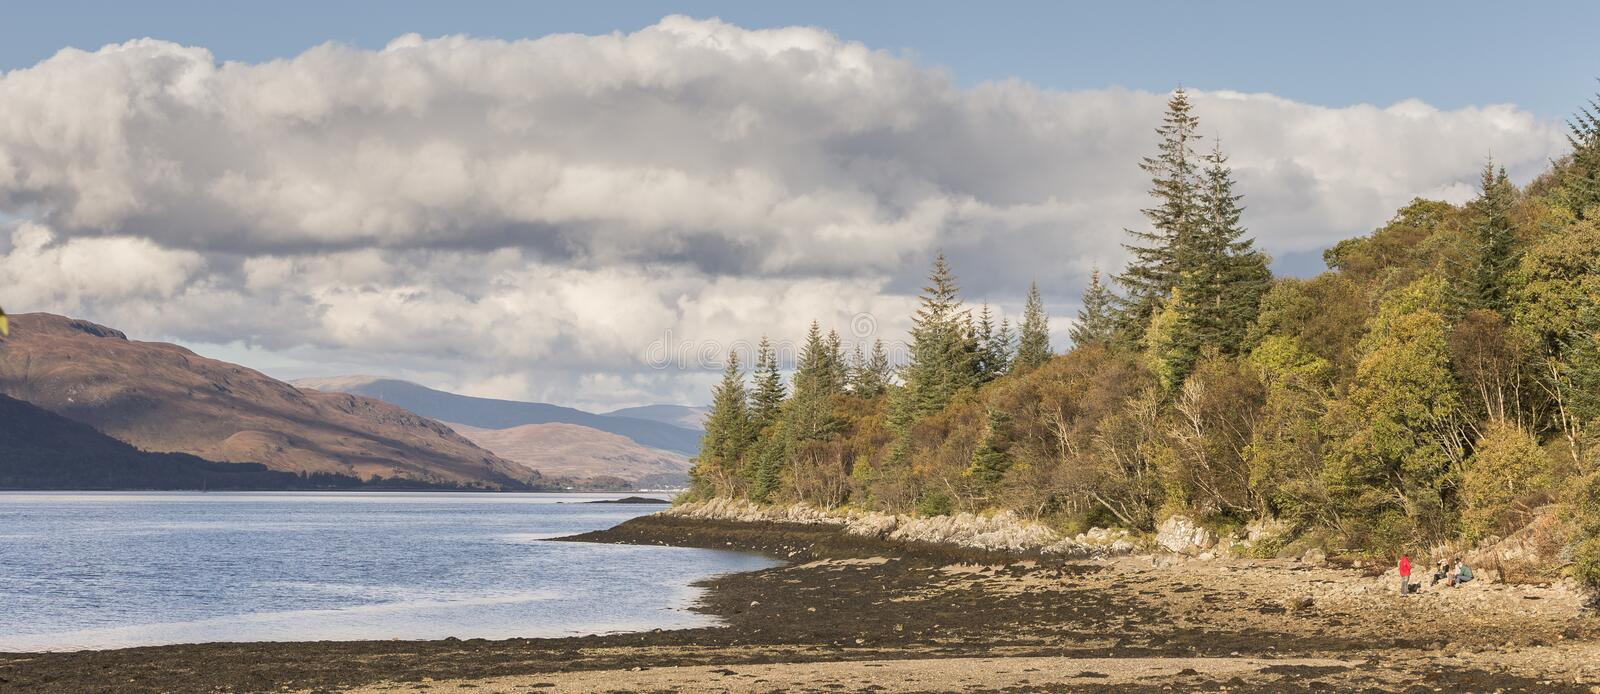 Loch Linnhe near Fort William in Scotland. royalty free stock photos